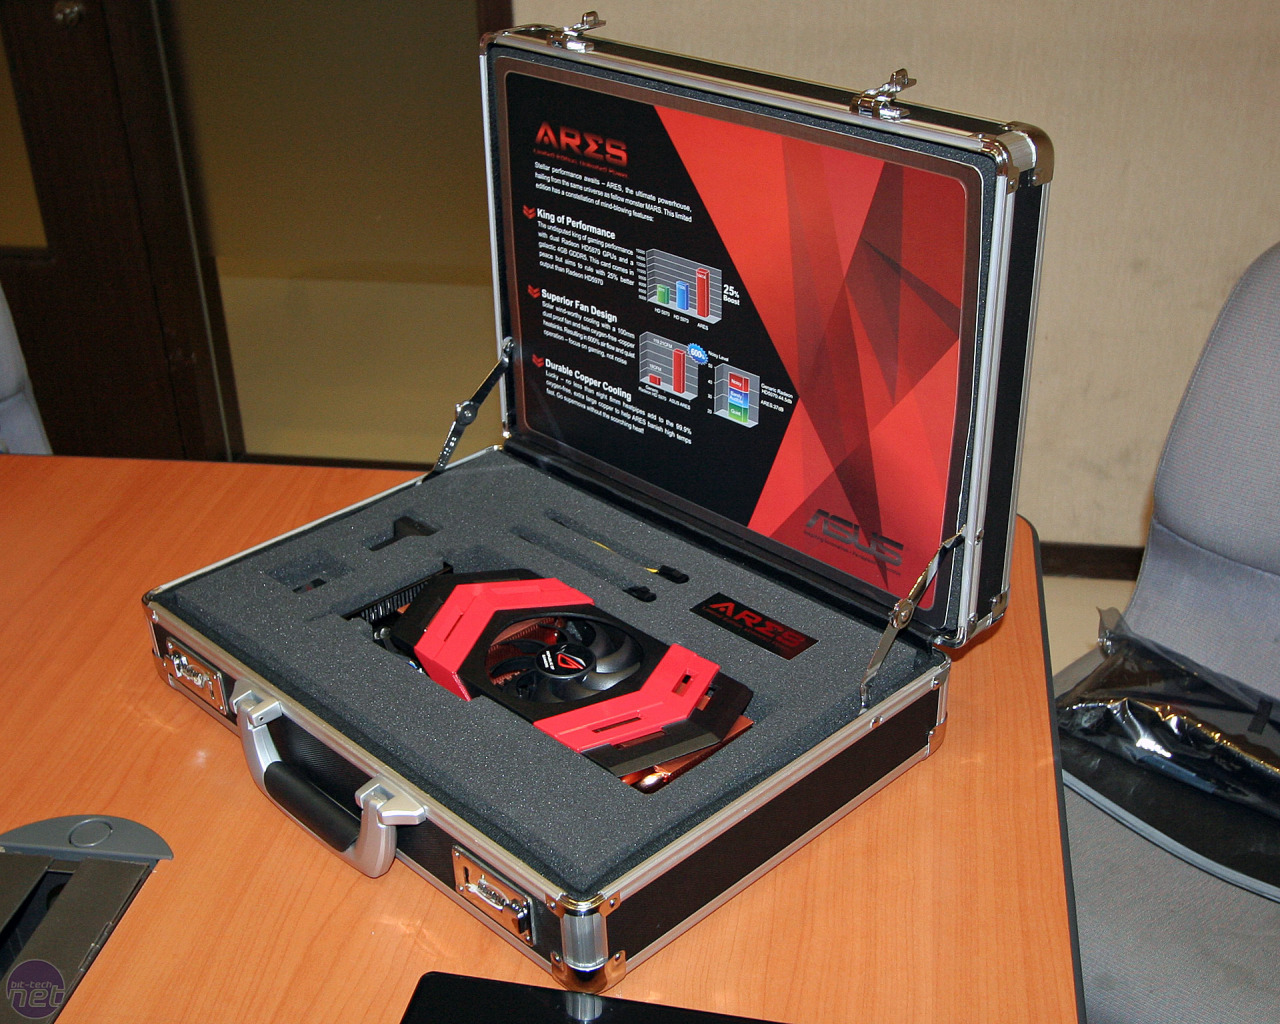 http://images.bit-tech.net/content_images/2010/06/asus-ares-and-immensity-technology-preview/ares-1.jpg